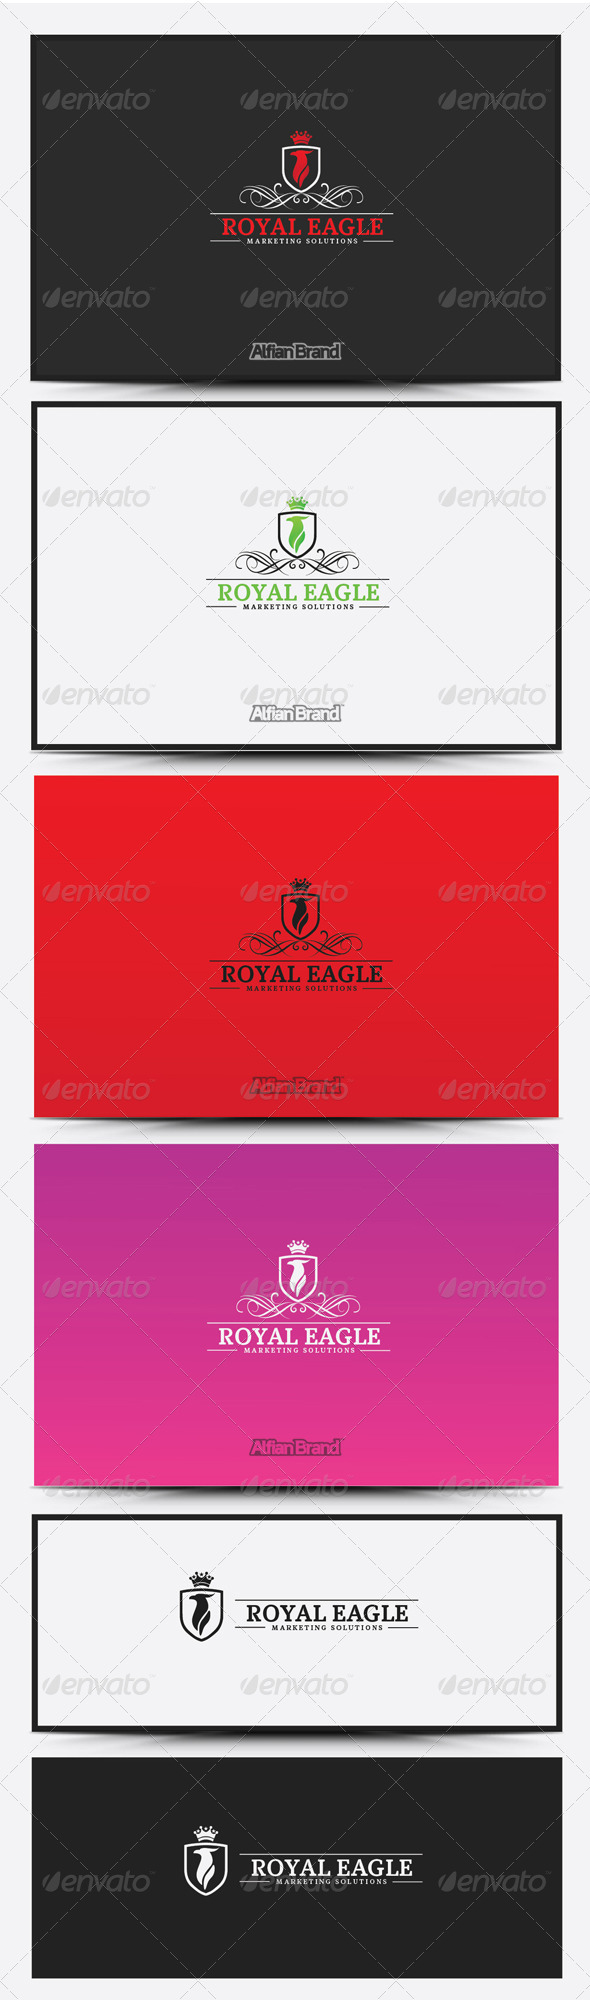 GraphicRiver Royal Eagle Logo 8418724